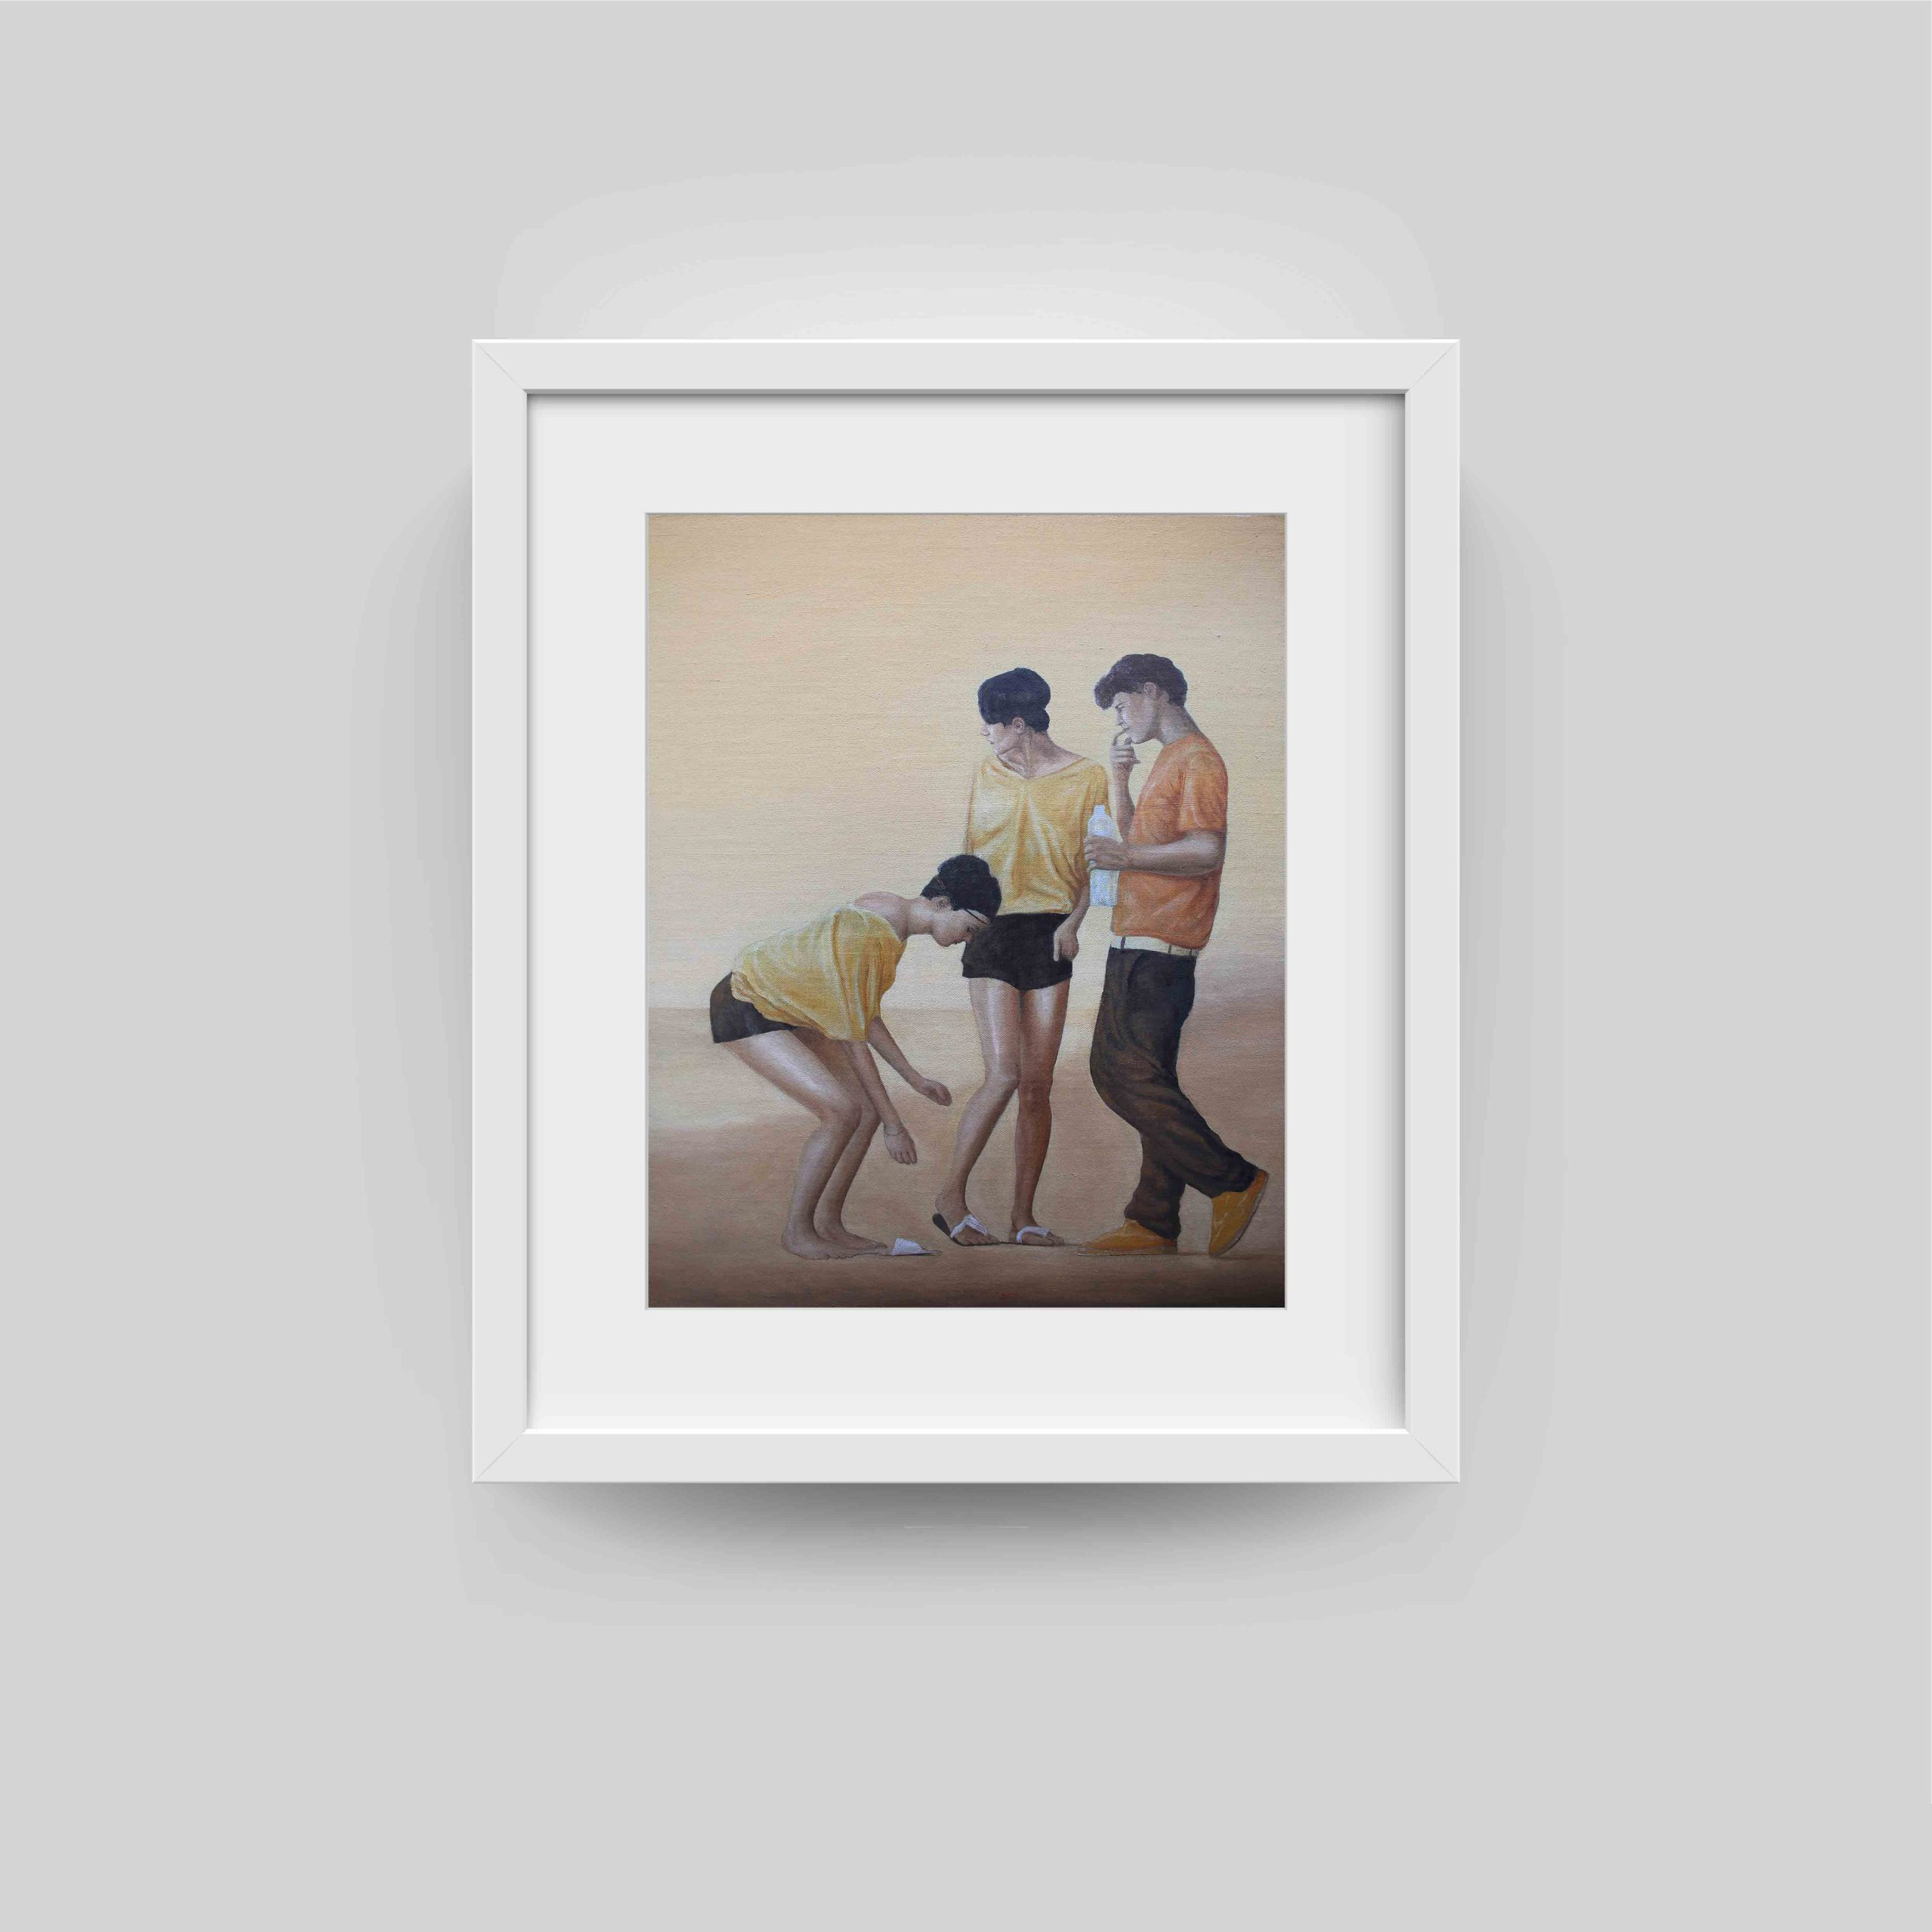 simon weir framed art print